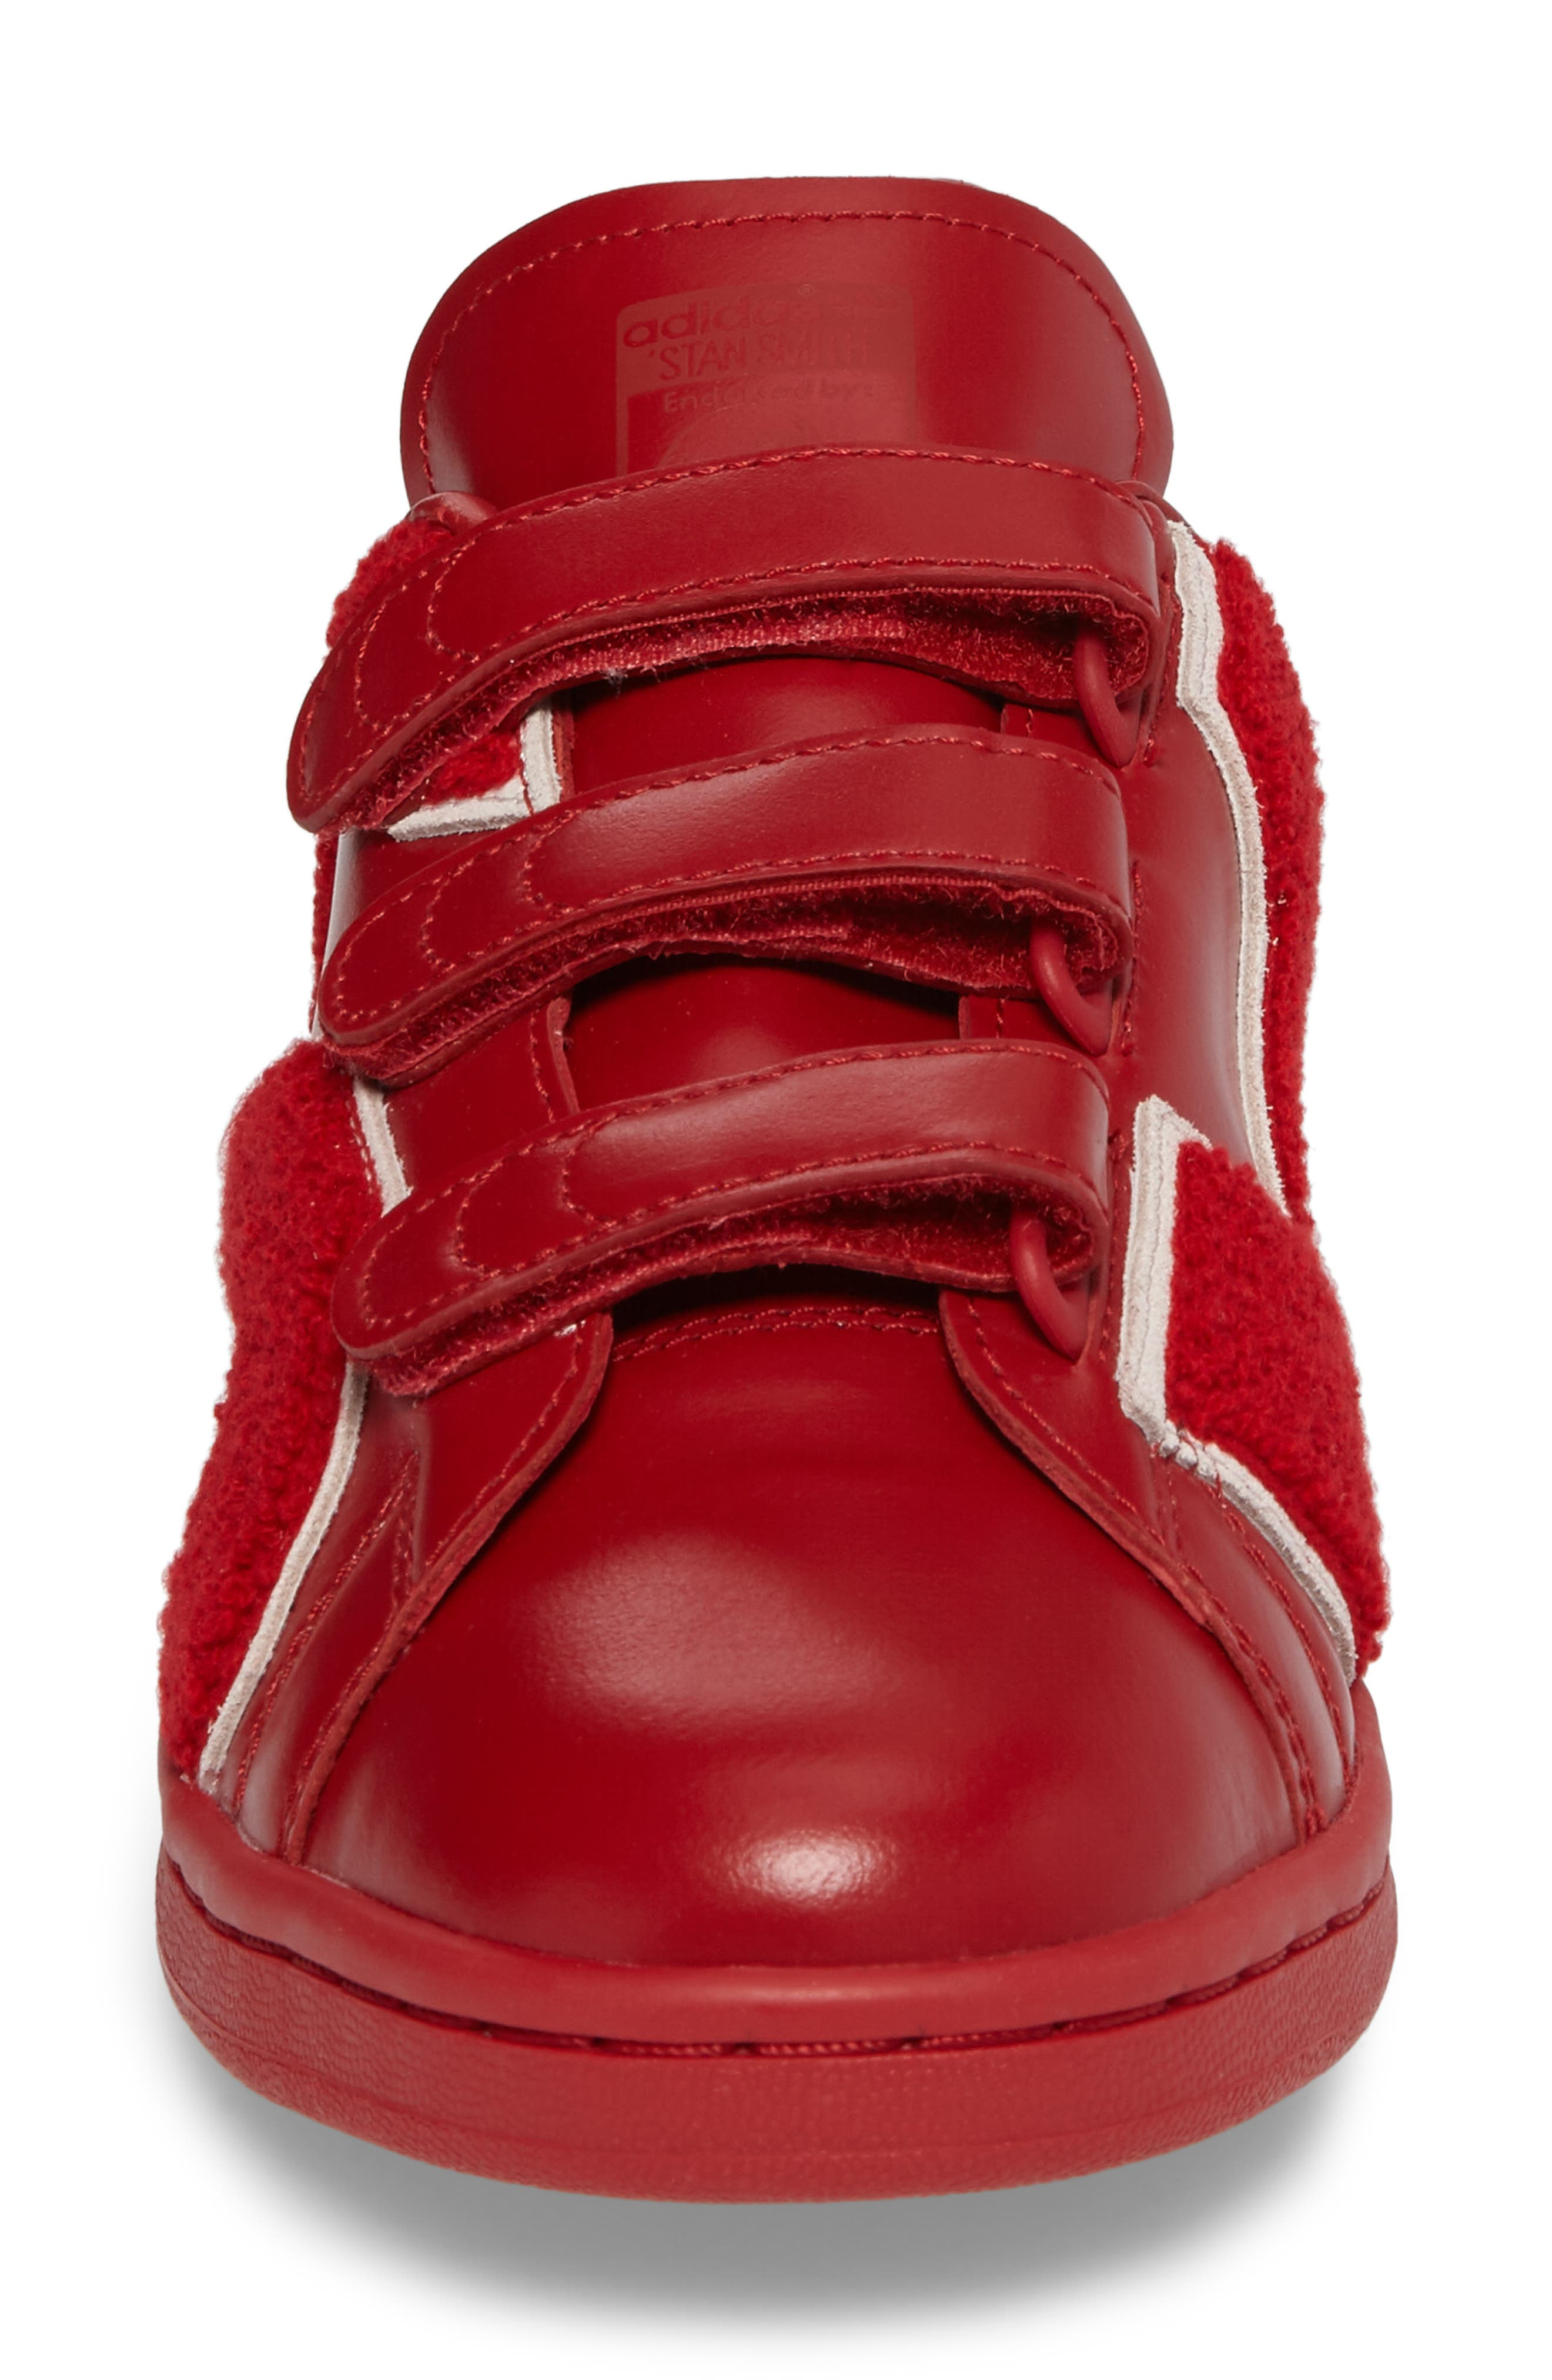 Stan Smith Sneaker,                             Alternate thumbnail 4, color,                             Powder Red